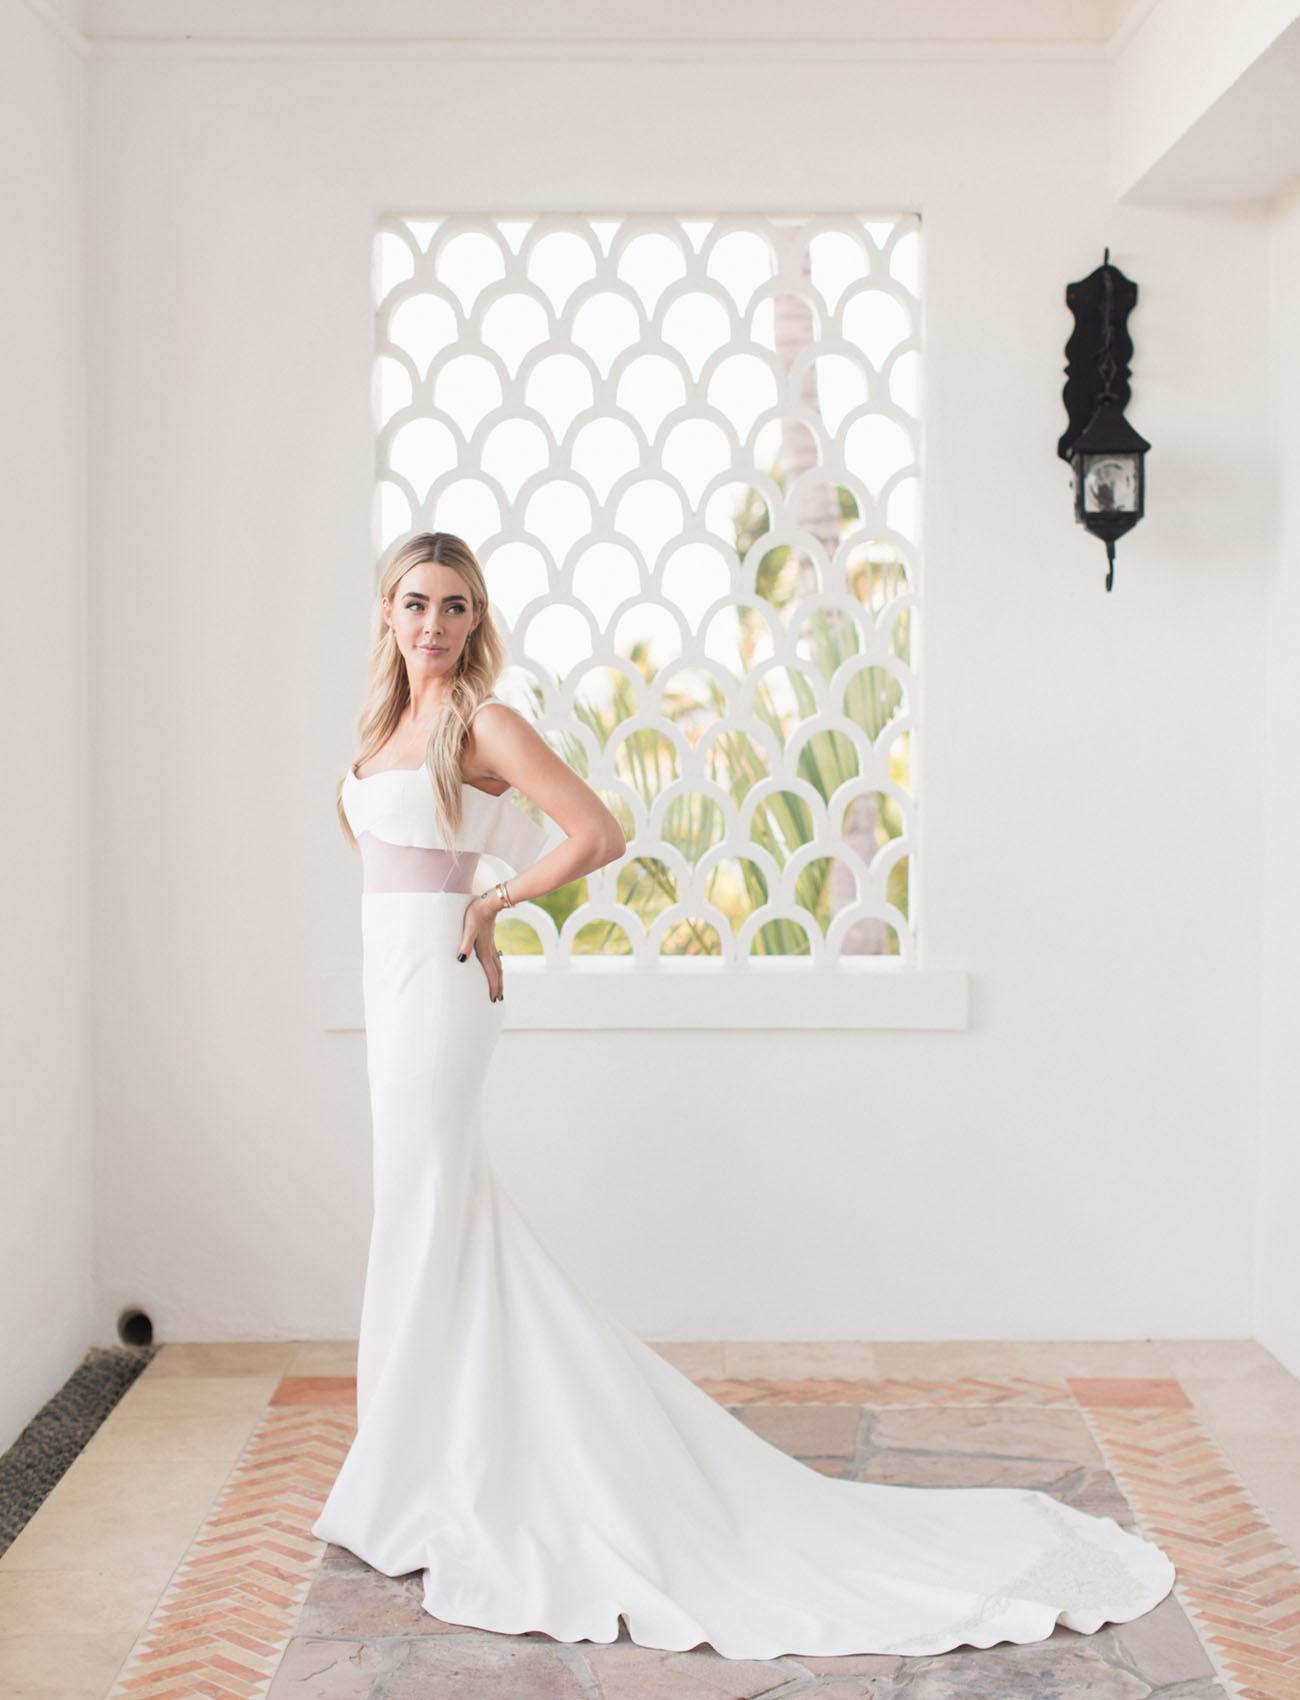 The bride was wearing a gorgeous minimalist Vera Wang dress with a small train and a sheer part